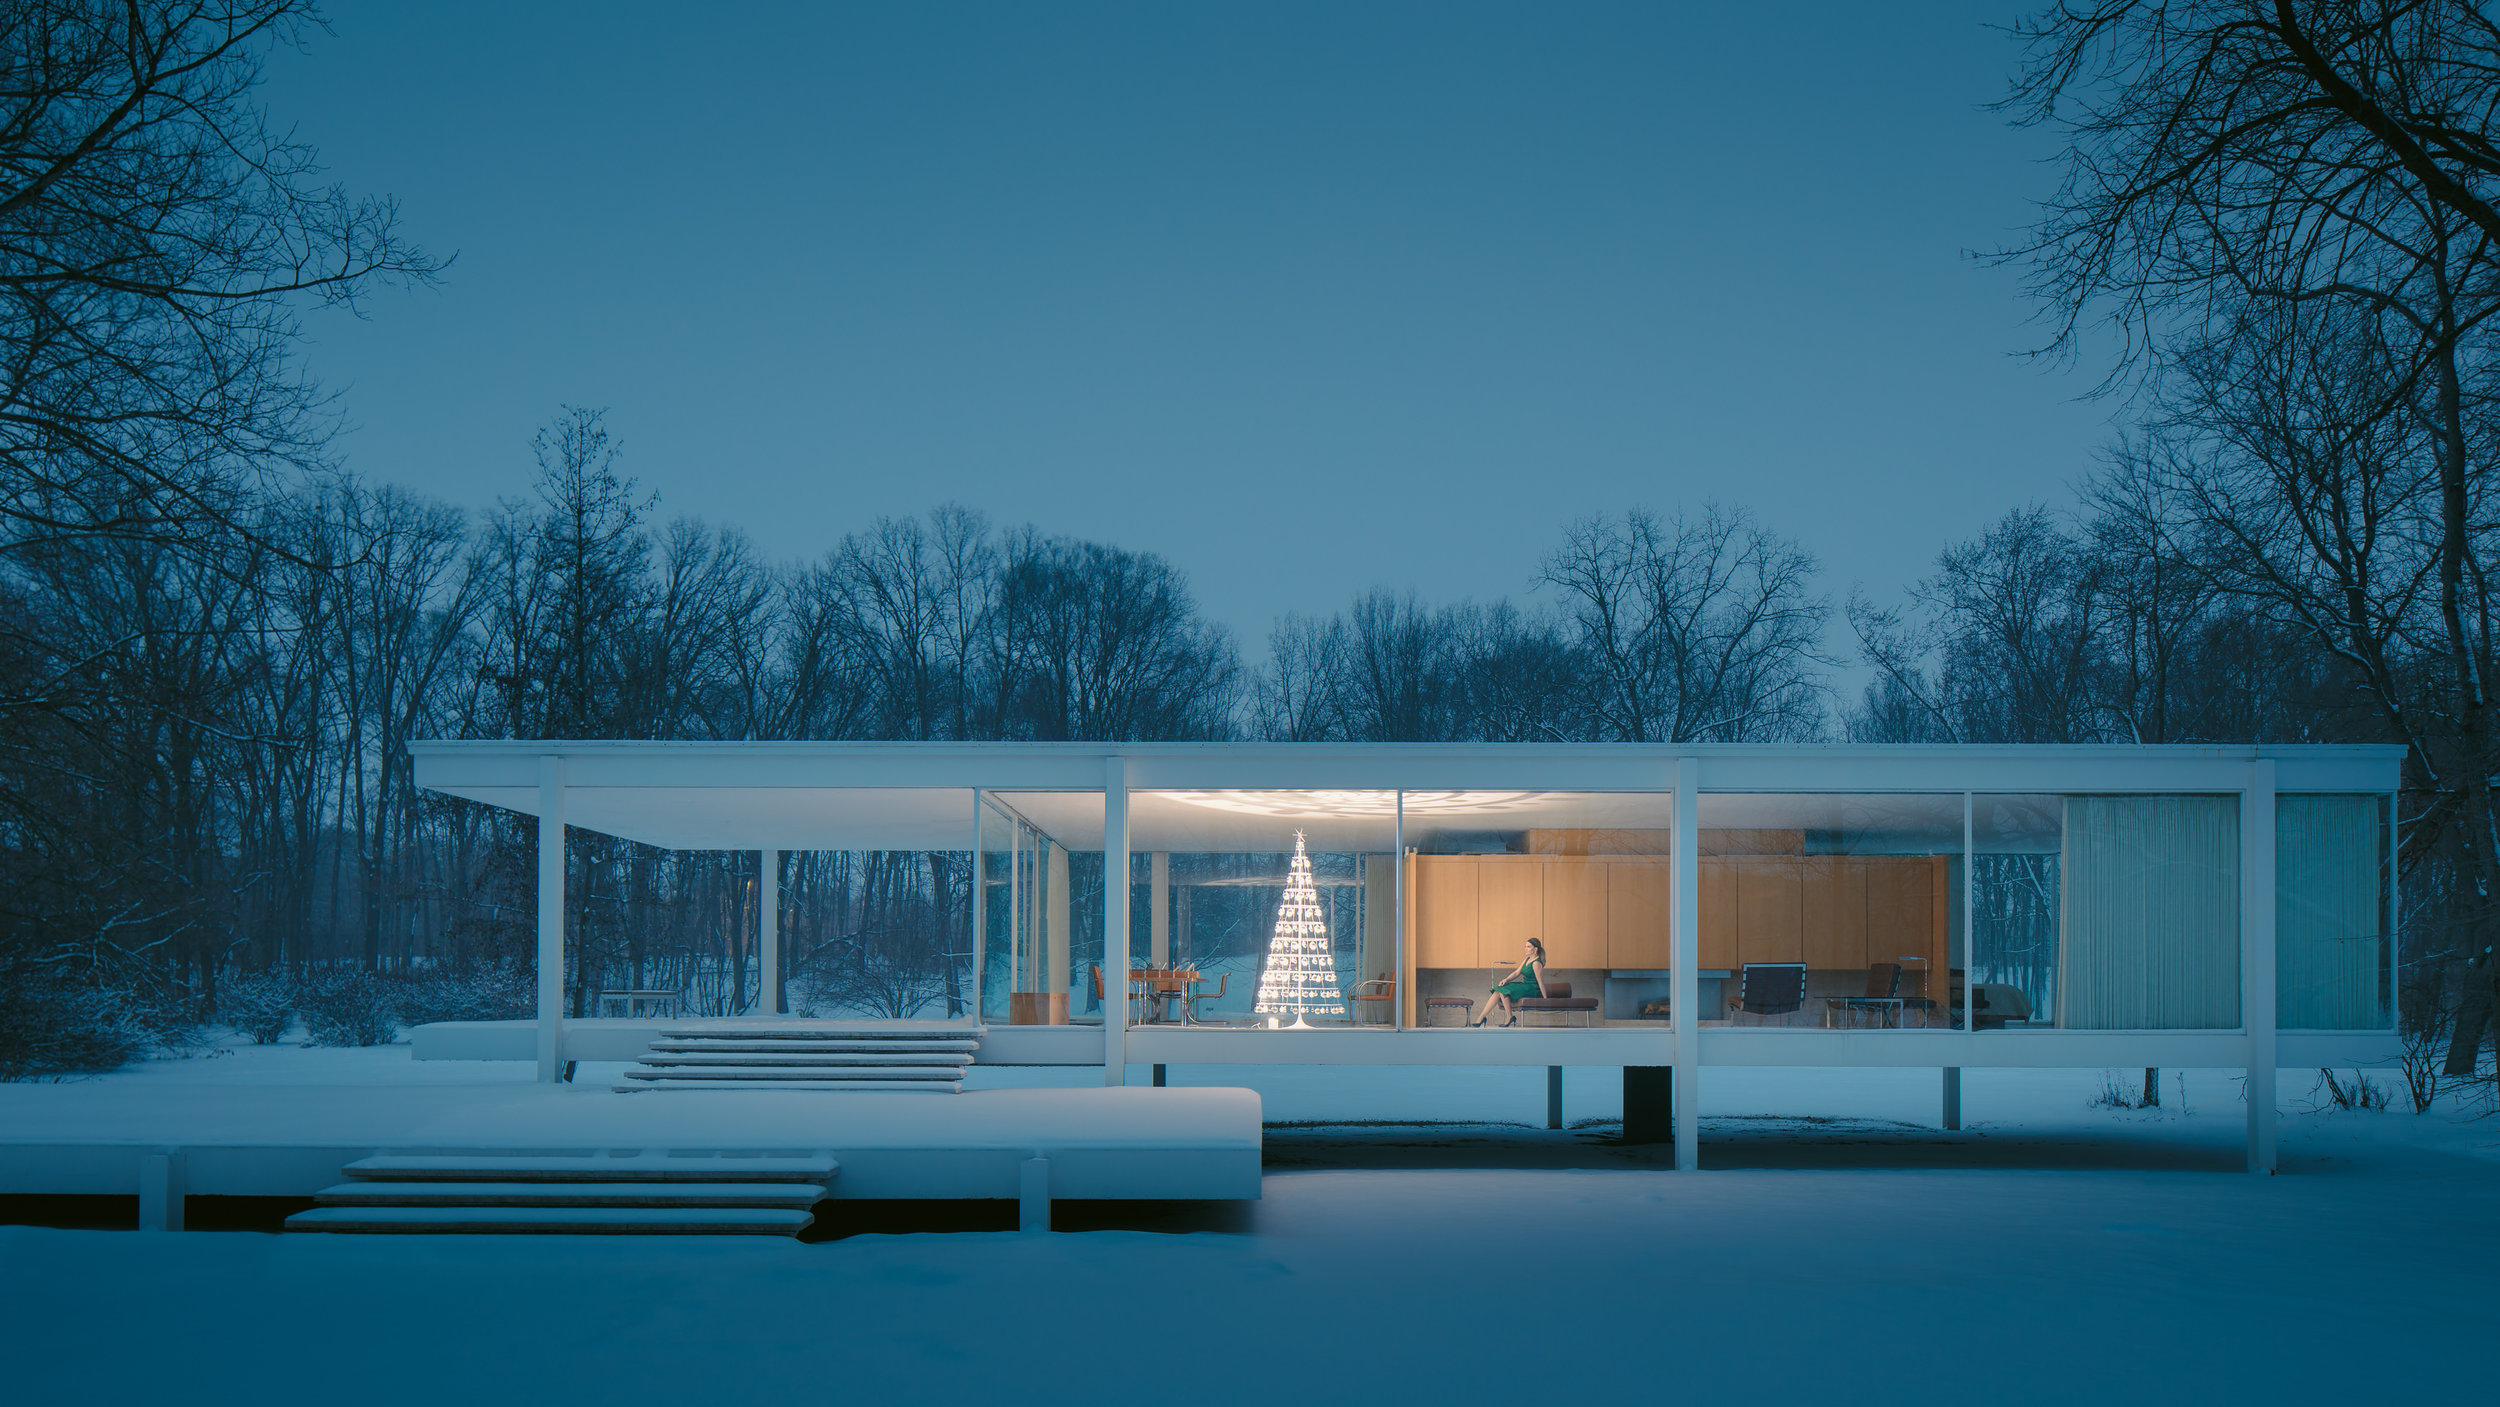 Farnsworth House by Mies van der Rohe : Images © JC Buck + © Courtesy of The Modern Christmas Tree.